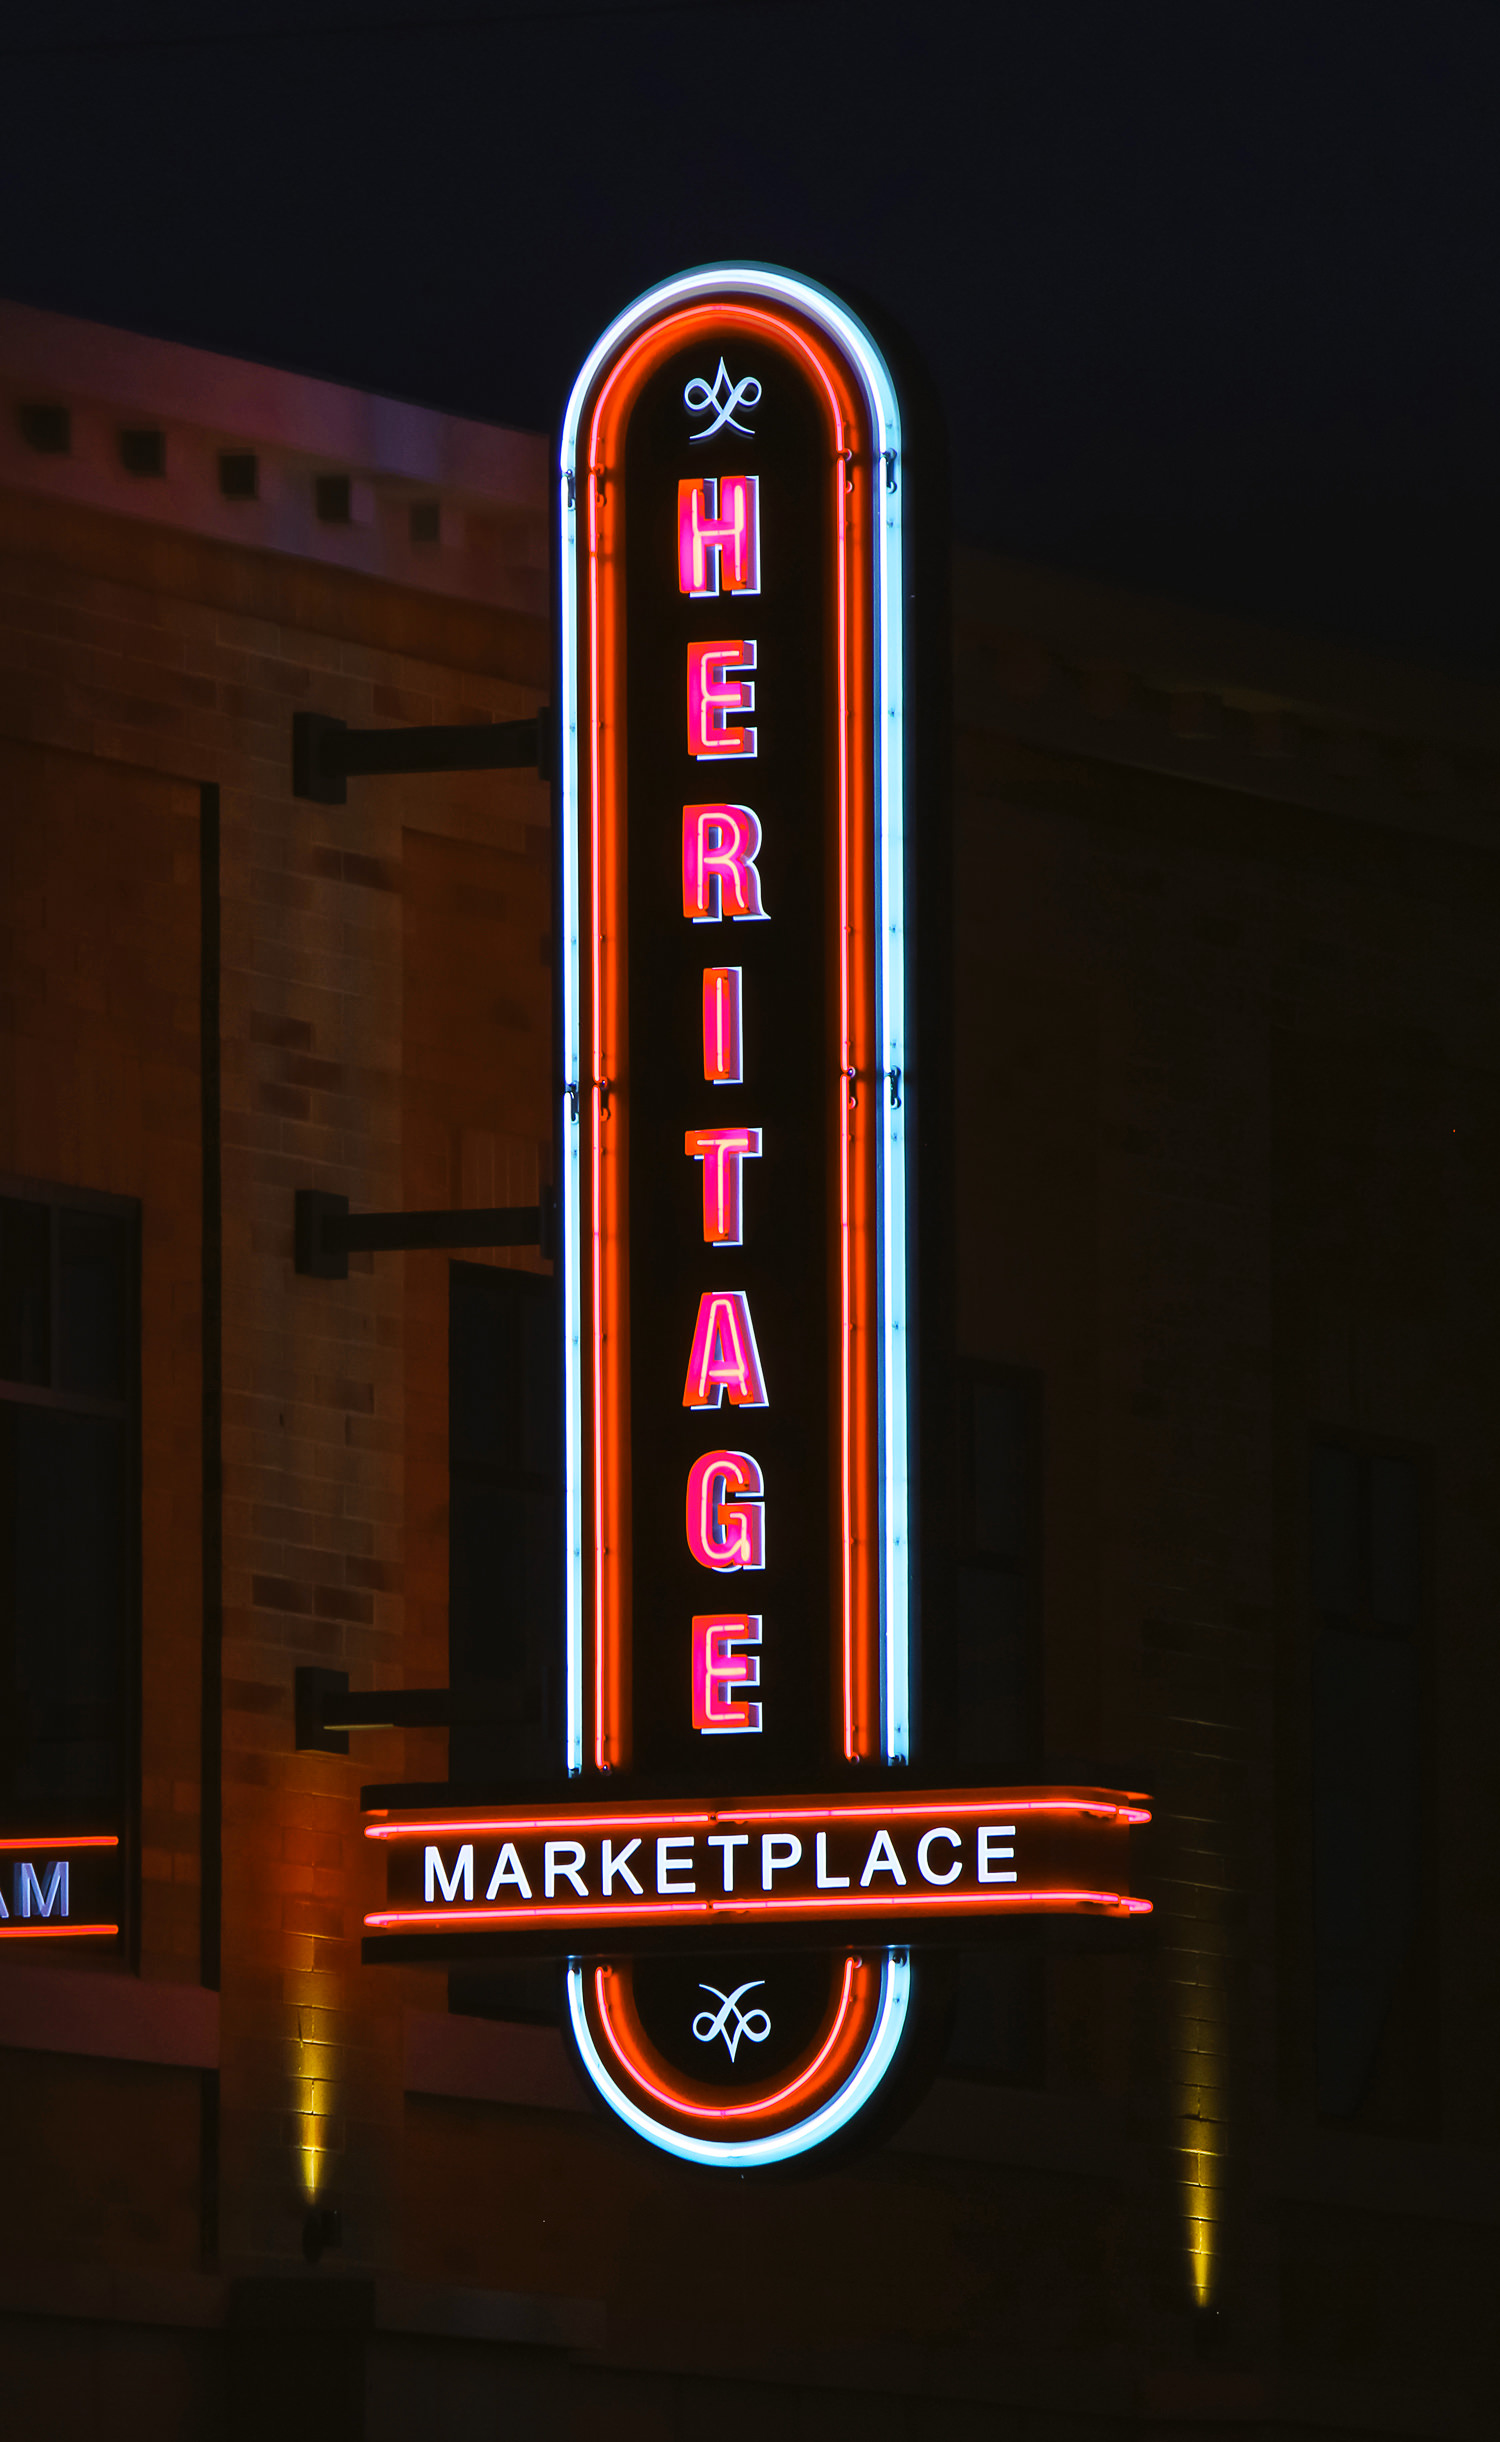 A night view of the blade sign marquee.  The custom neon creates a beautiful glow onto the brick building.